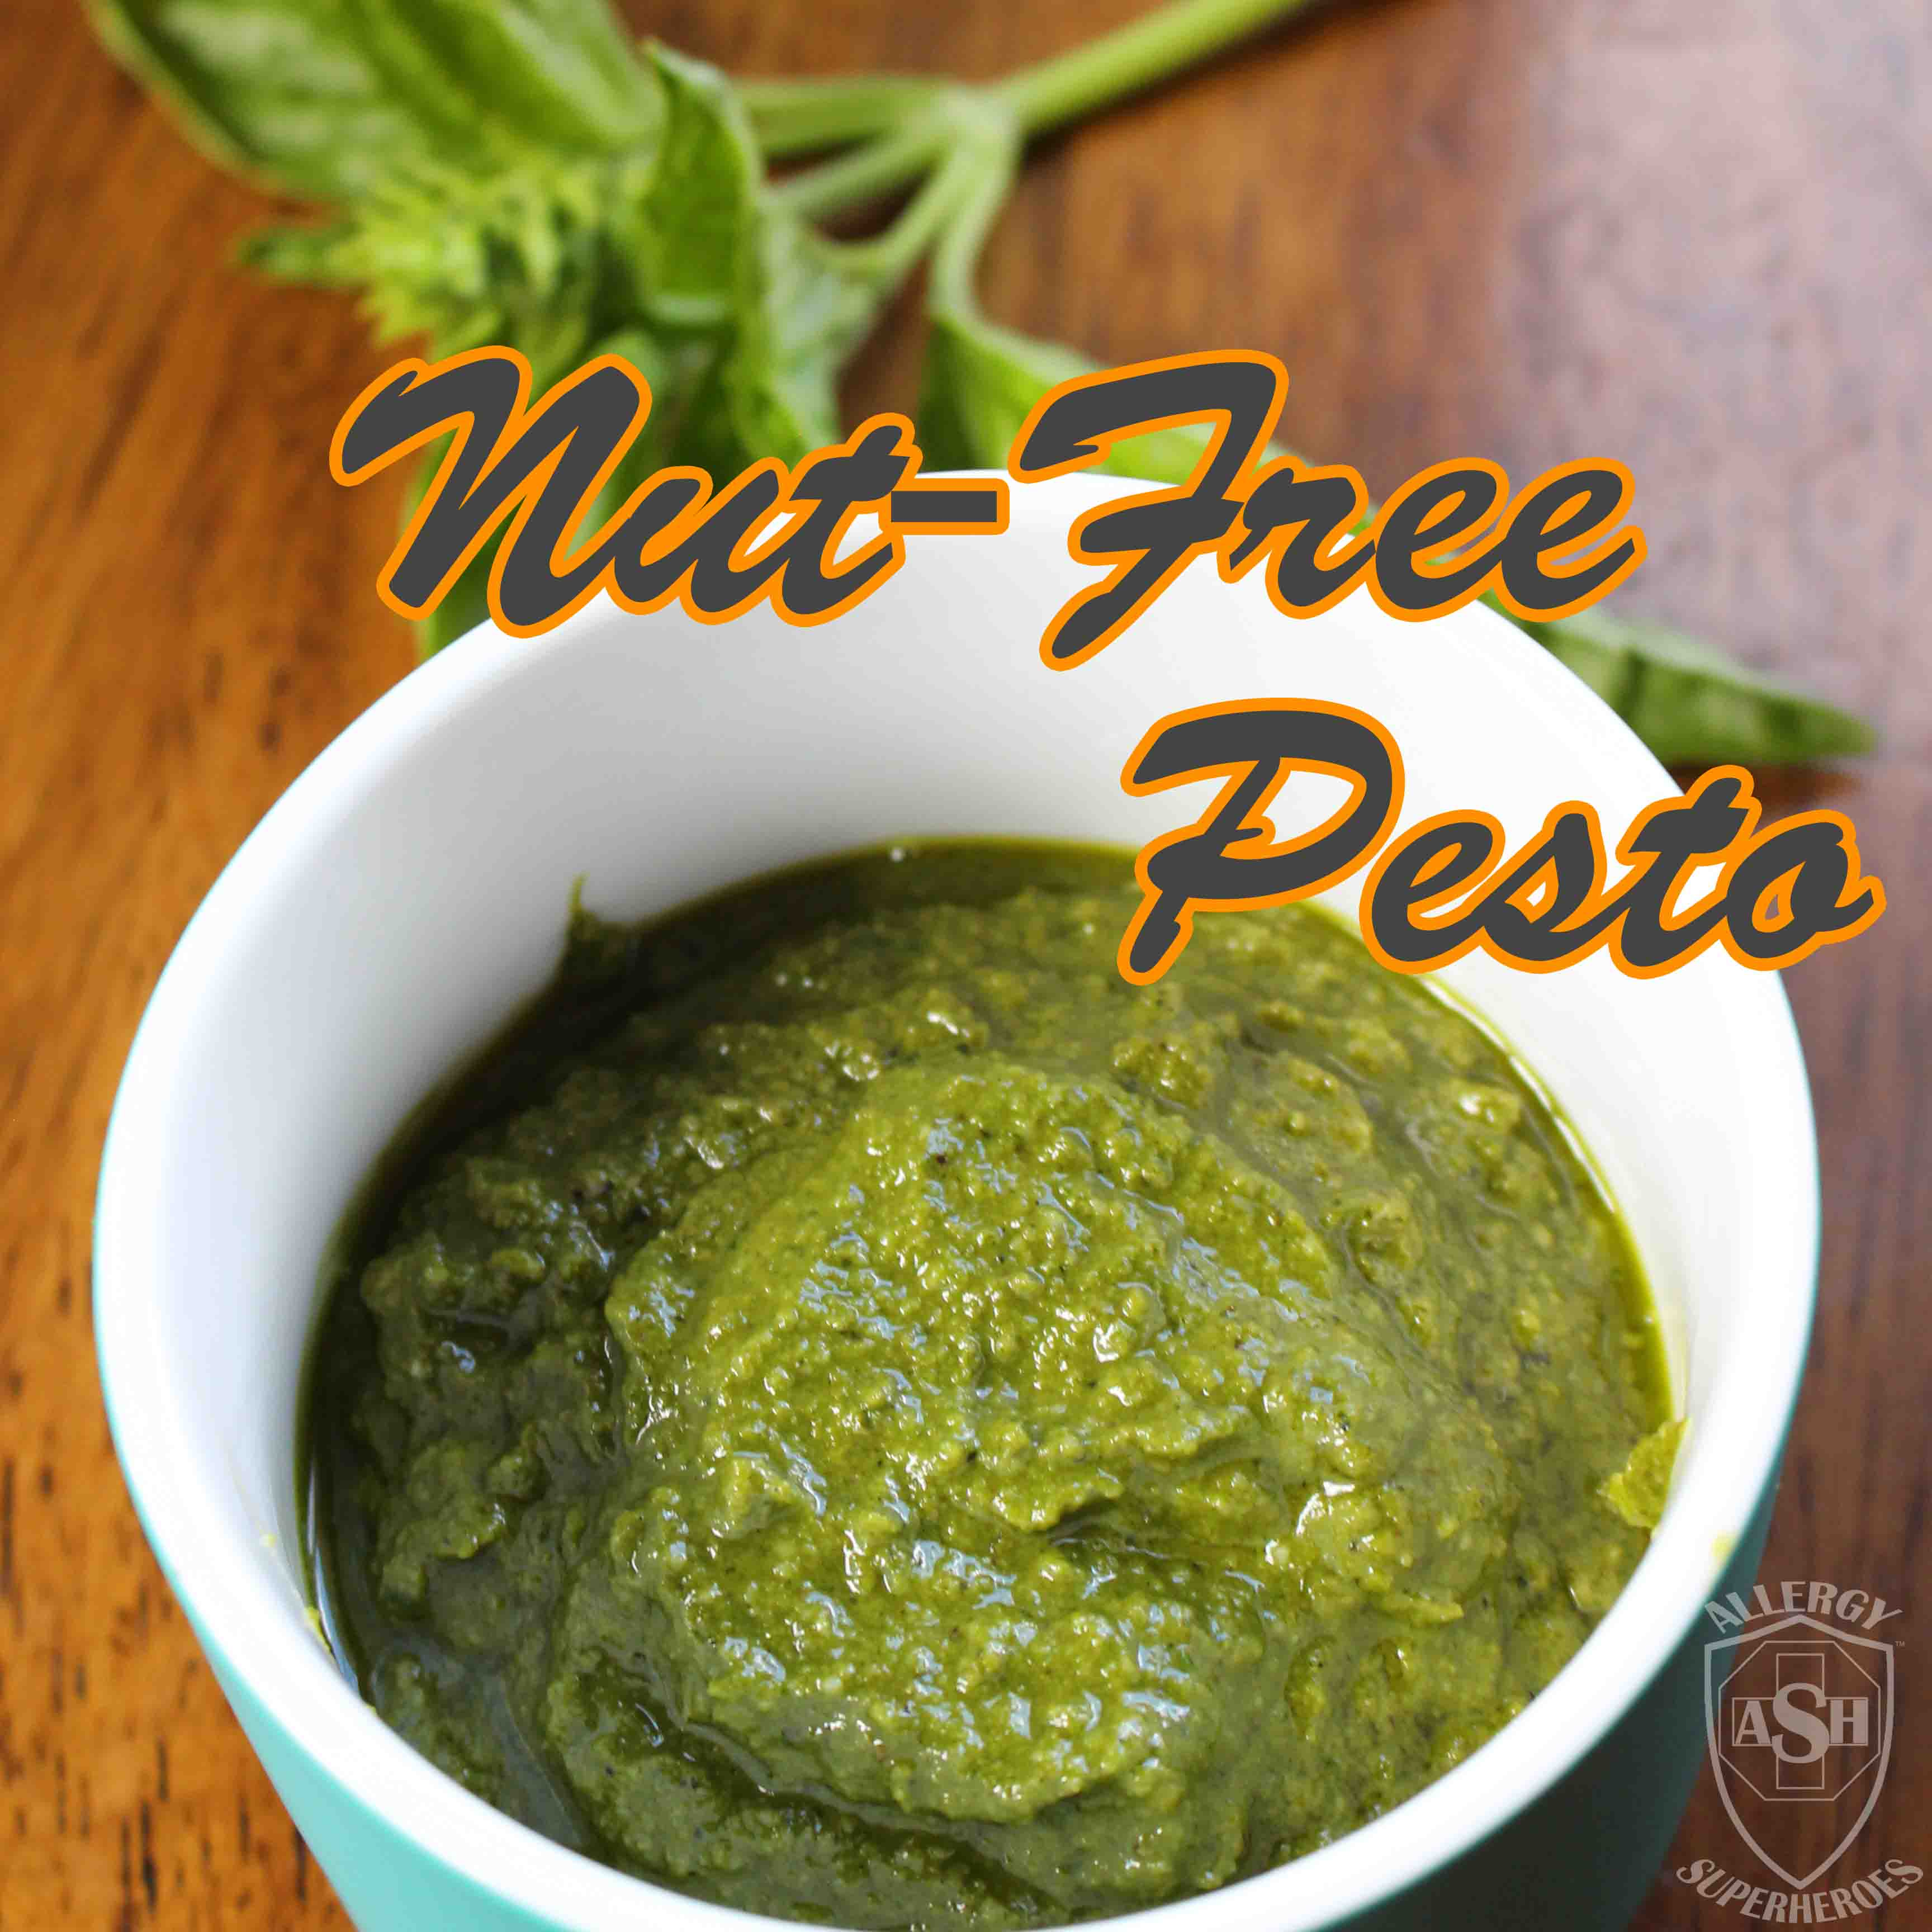 Nut free pesto allergy superheroes blog nut free pesto recipe using hemp seeds from allergy superheroes forumfinder Image collections